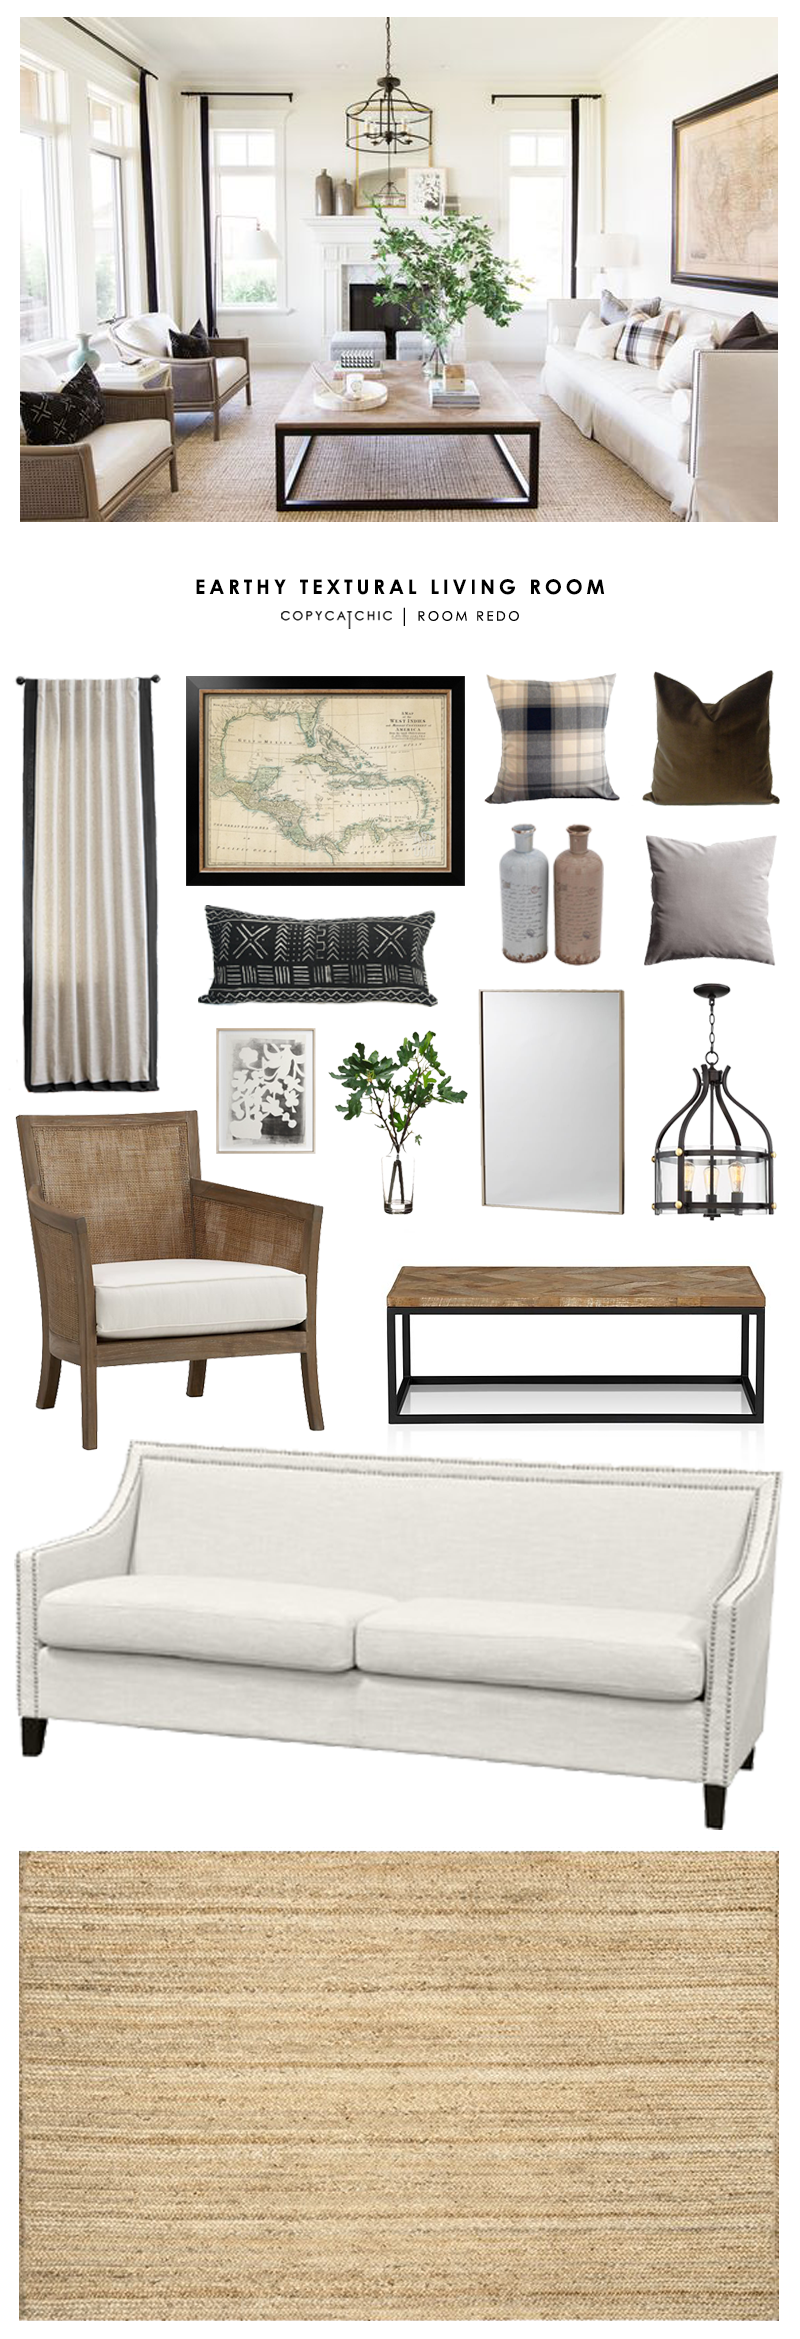 Copy Cat Chic Room Redo Earthy Textural Living Room Copy Cat Chic Blogl